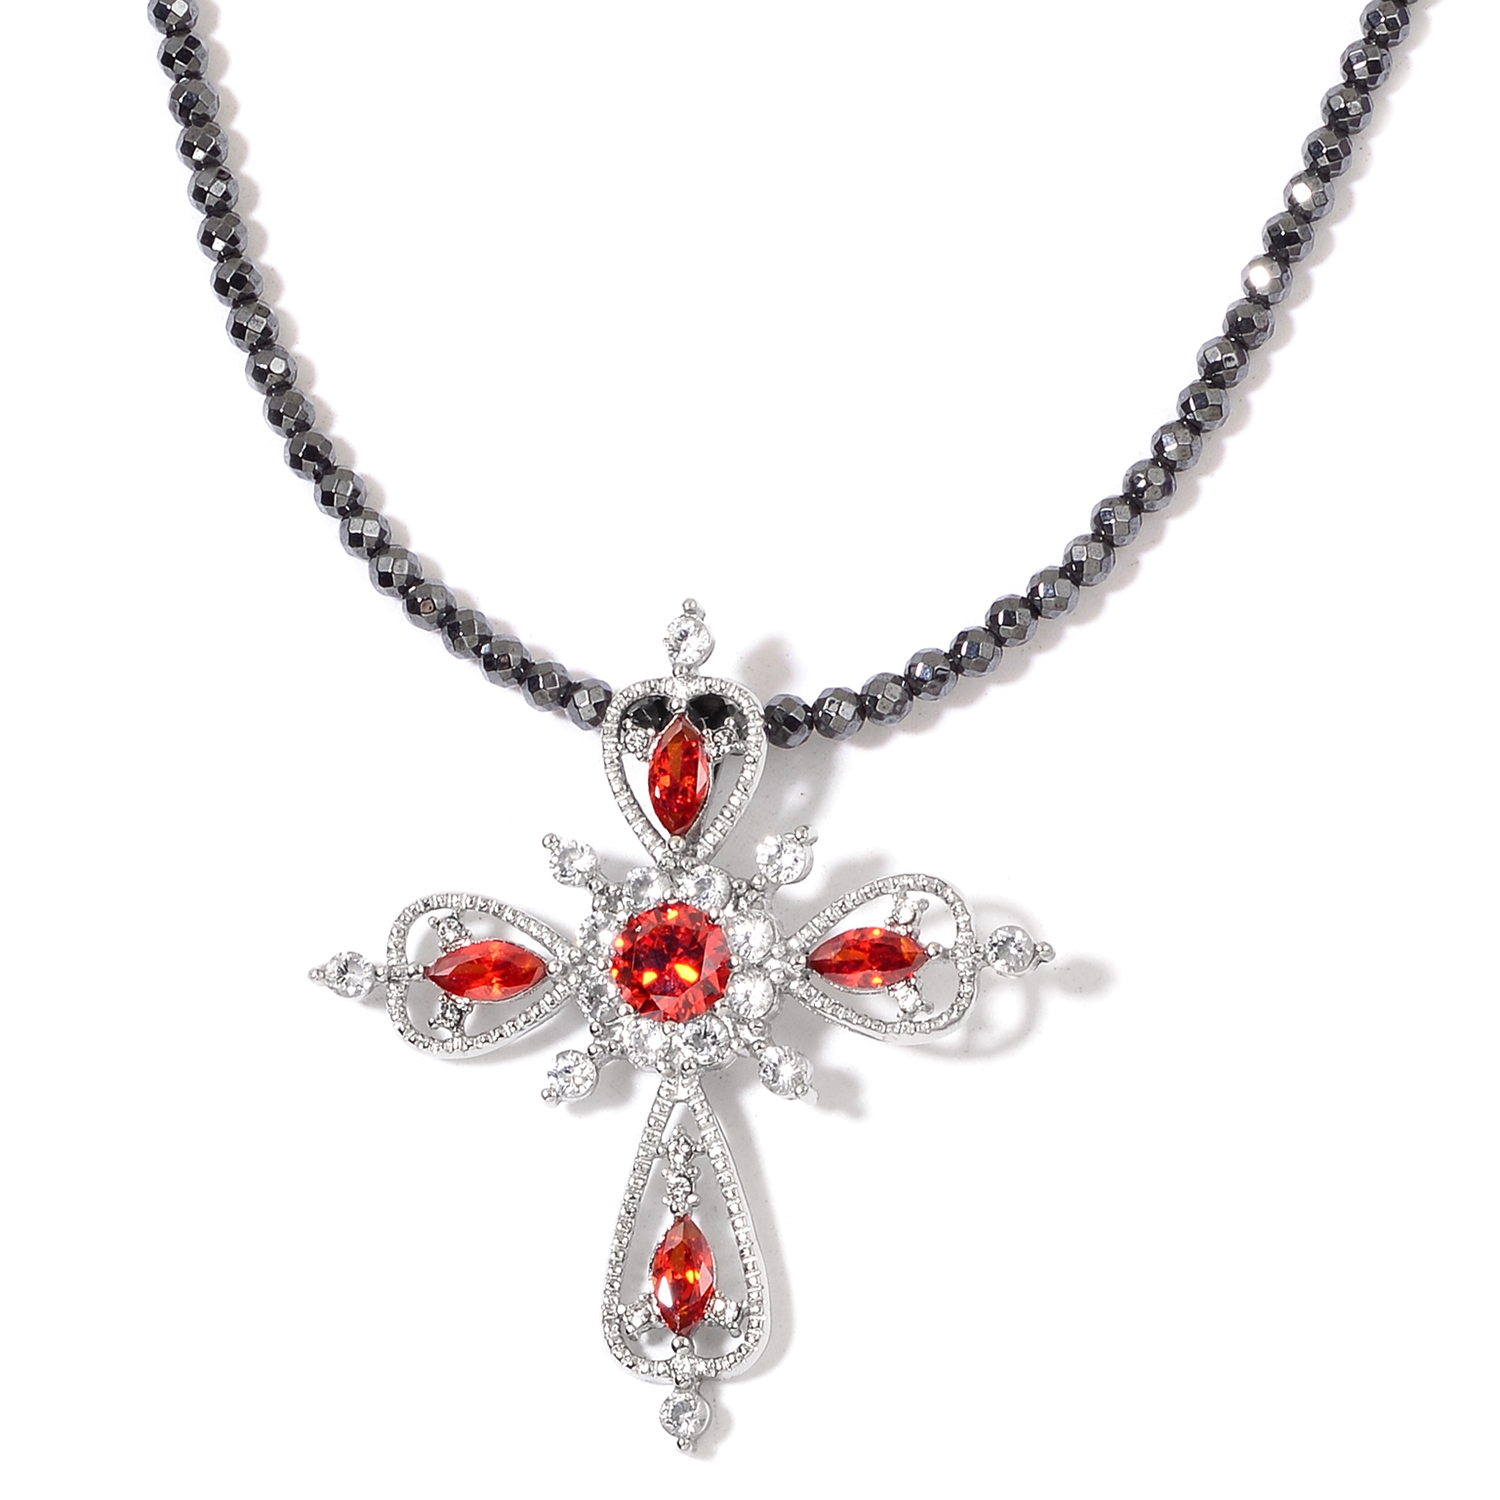 Mothers day special hematite simulated red and white diamond mothers day special hematite simulated red and white diamond stainless steel cross pendant with necklace 18 in tgw 5600 cts 2736385 aloadofball Gallery